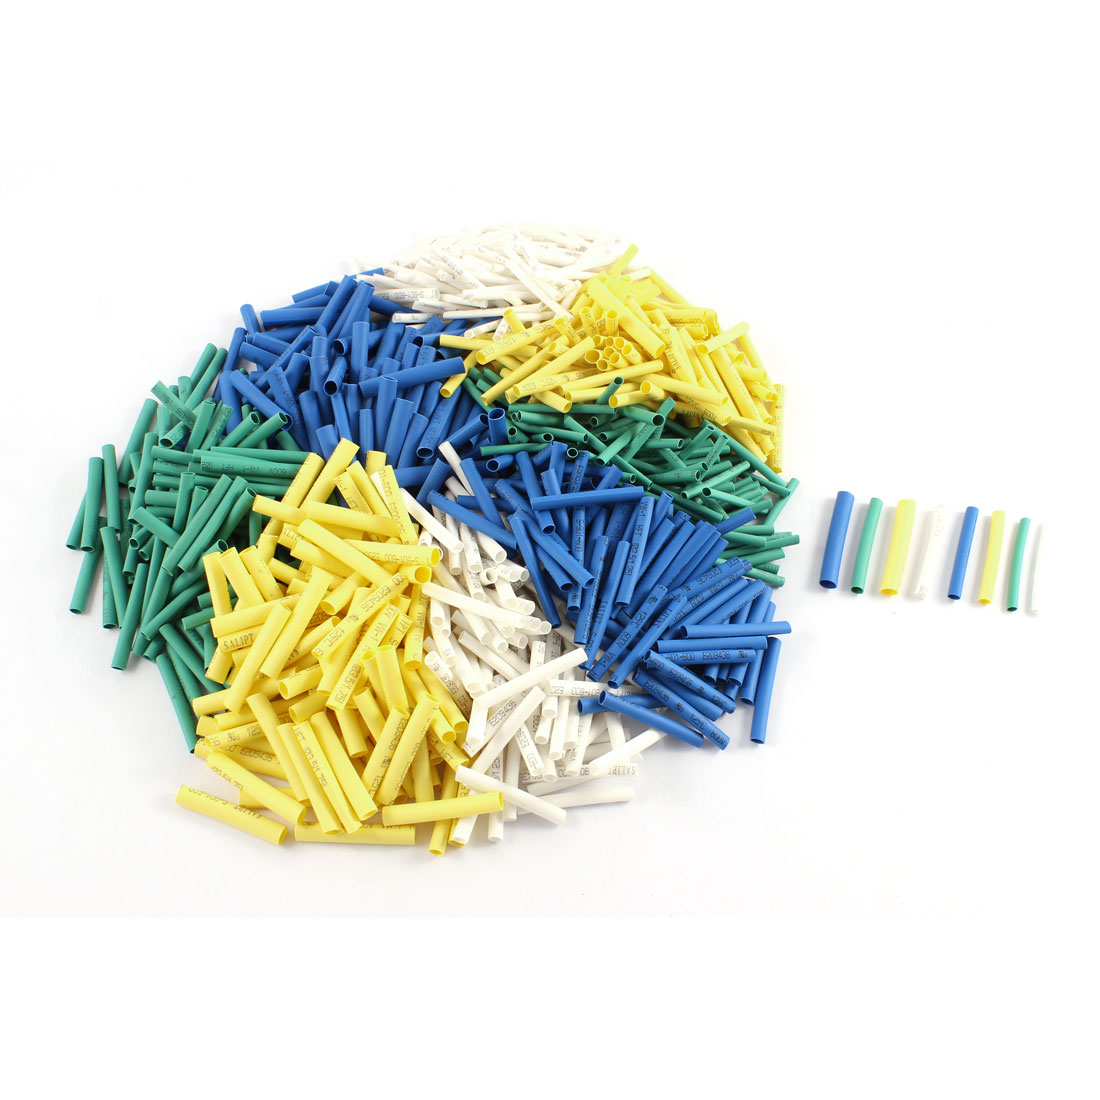 400 Pcs Polyolefin Heat Shrink Tubing Electrical Connection Cable Sleeve Assorted Color